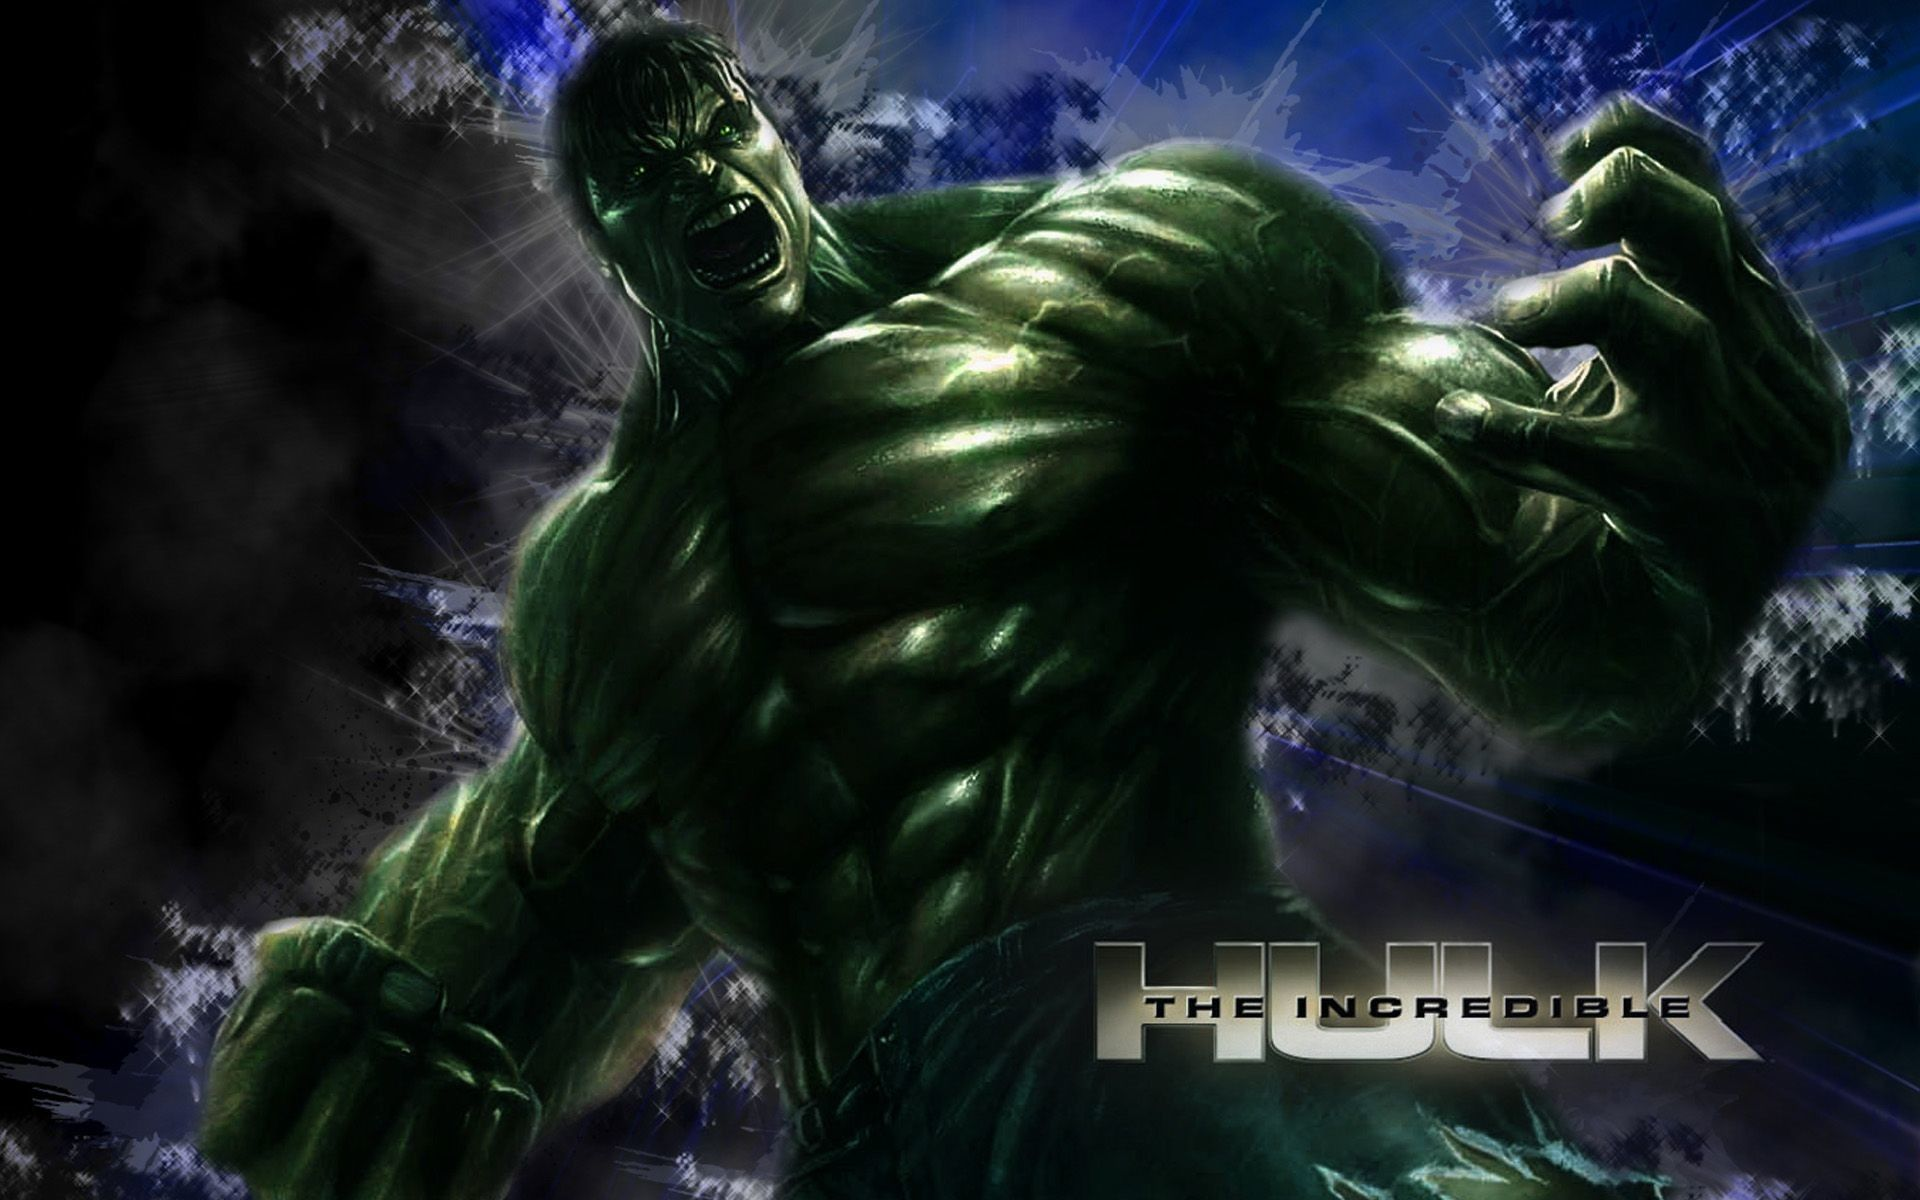 1920x1200 Hulk Hd Wallpaper Jpg 1920a 1200 Marvel Wallpaper Wallpaper Images Hd Wallpaper Backgrounds